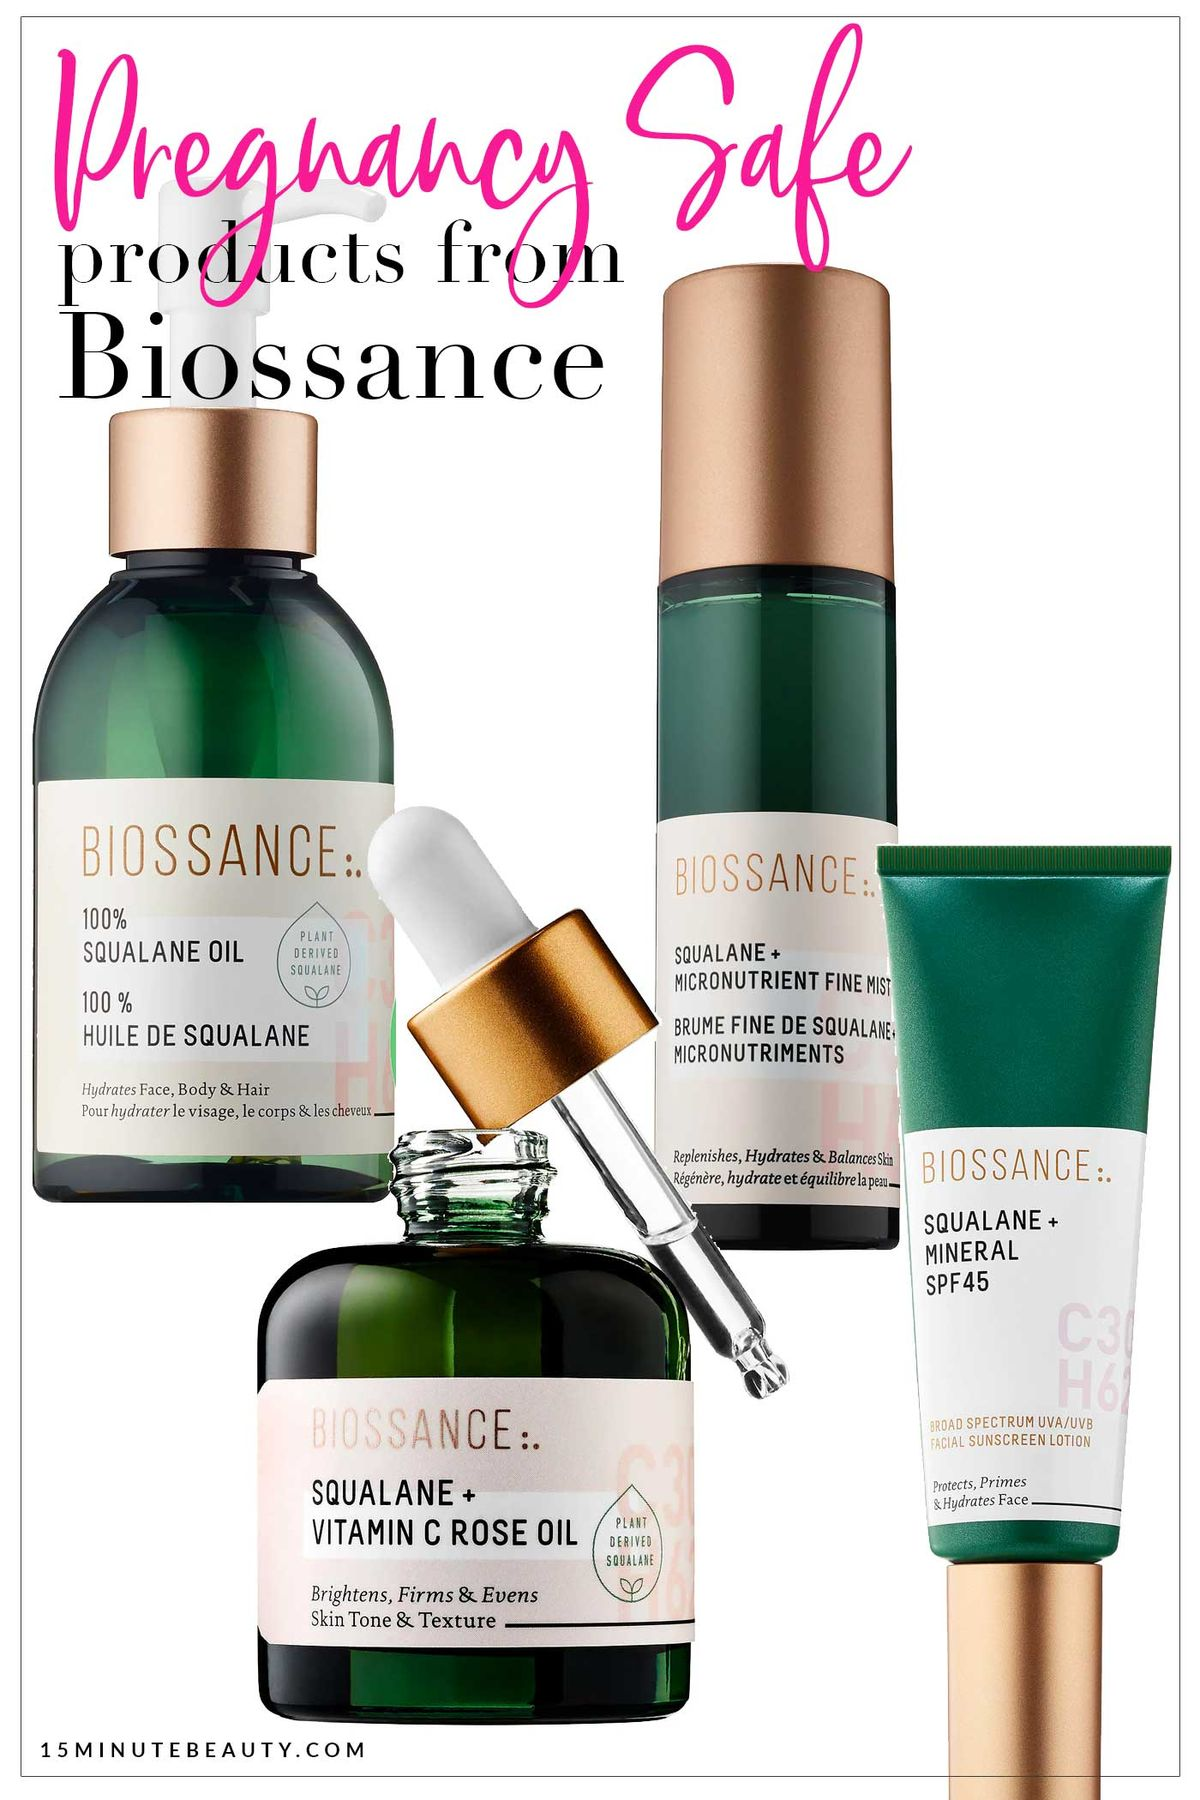 Pregnancy safe pregnancy skincare products from Biossance